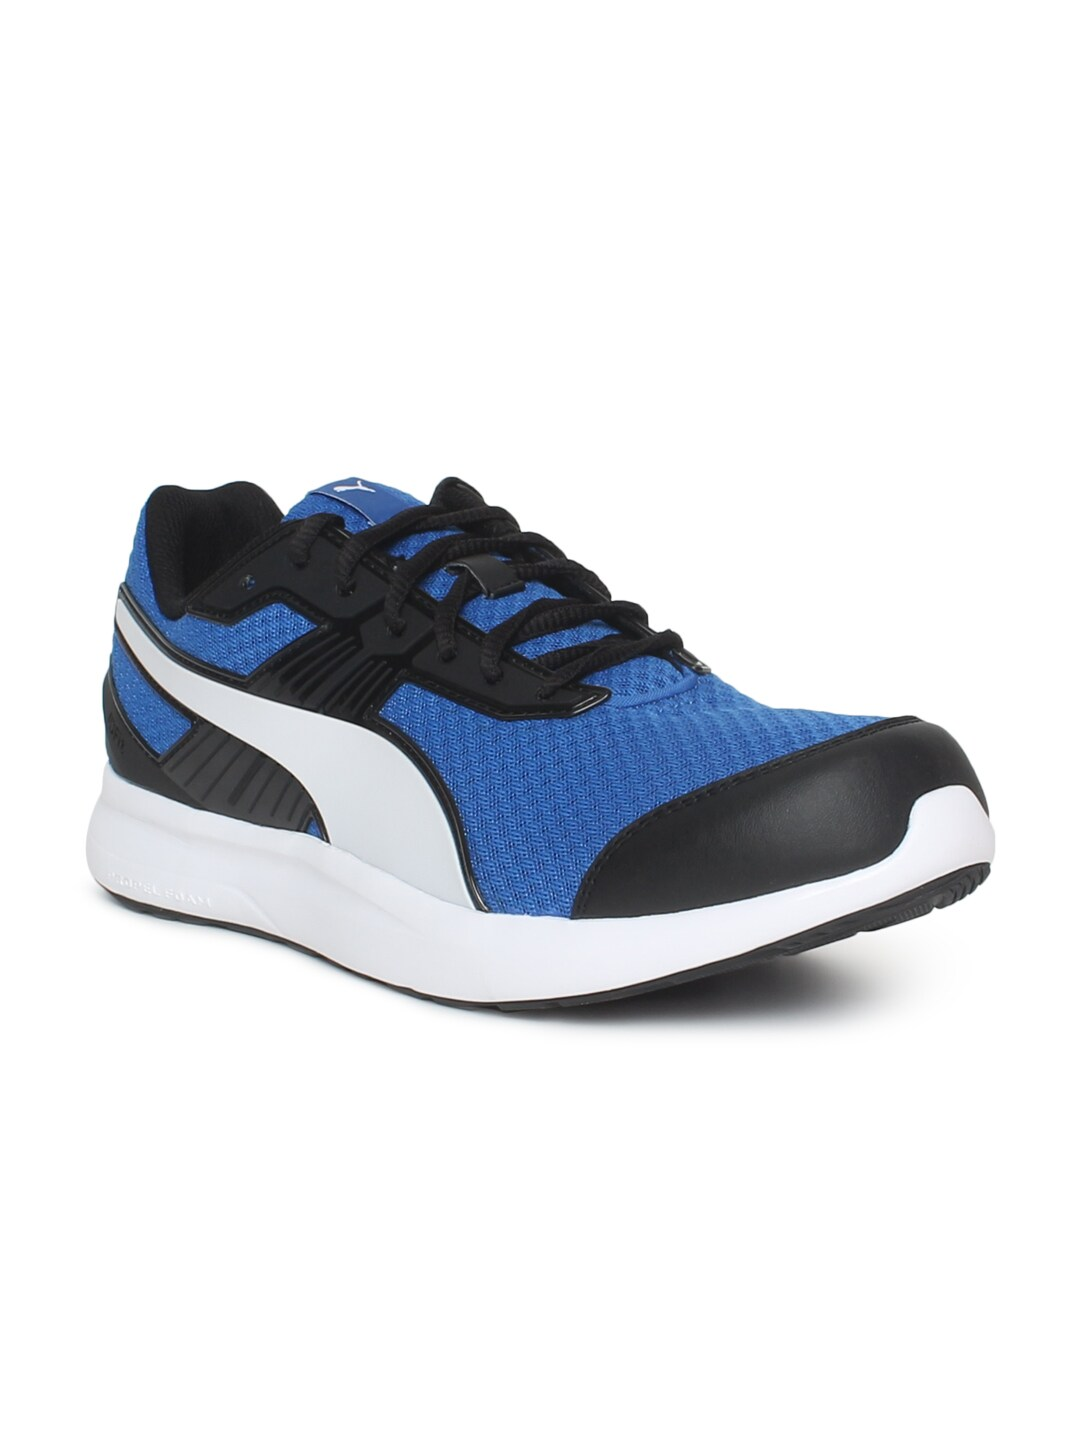 10c0ced26de Buy PUMA Unisex Grey Bolster DP Running Shoes - Sports Shoes for ...